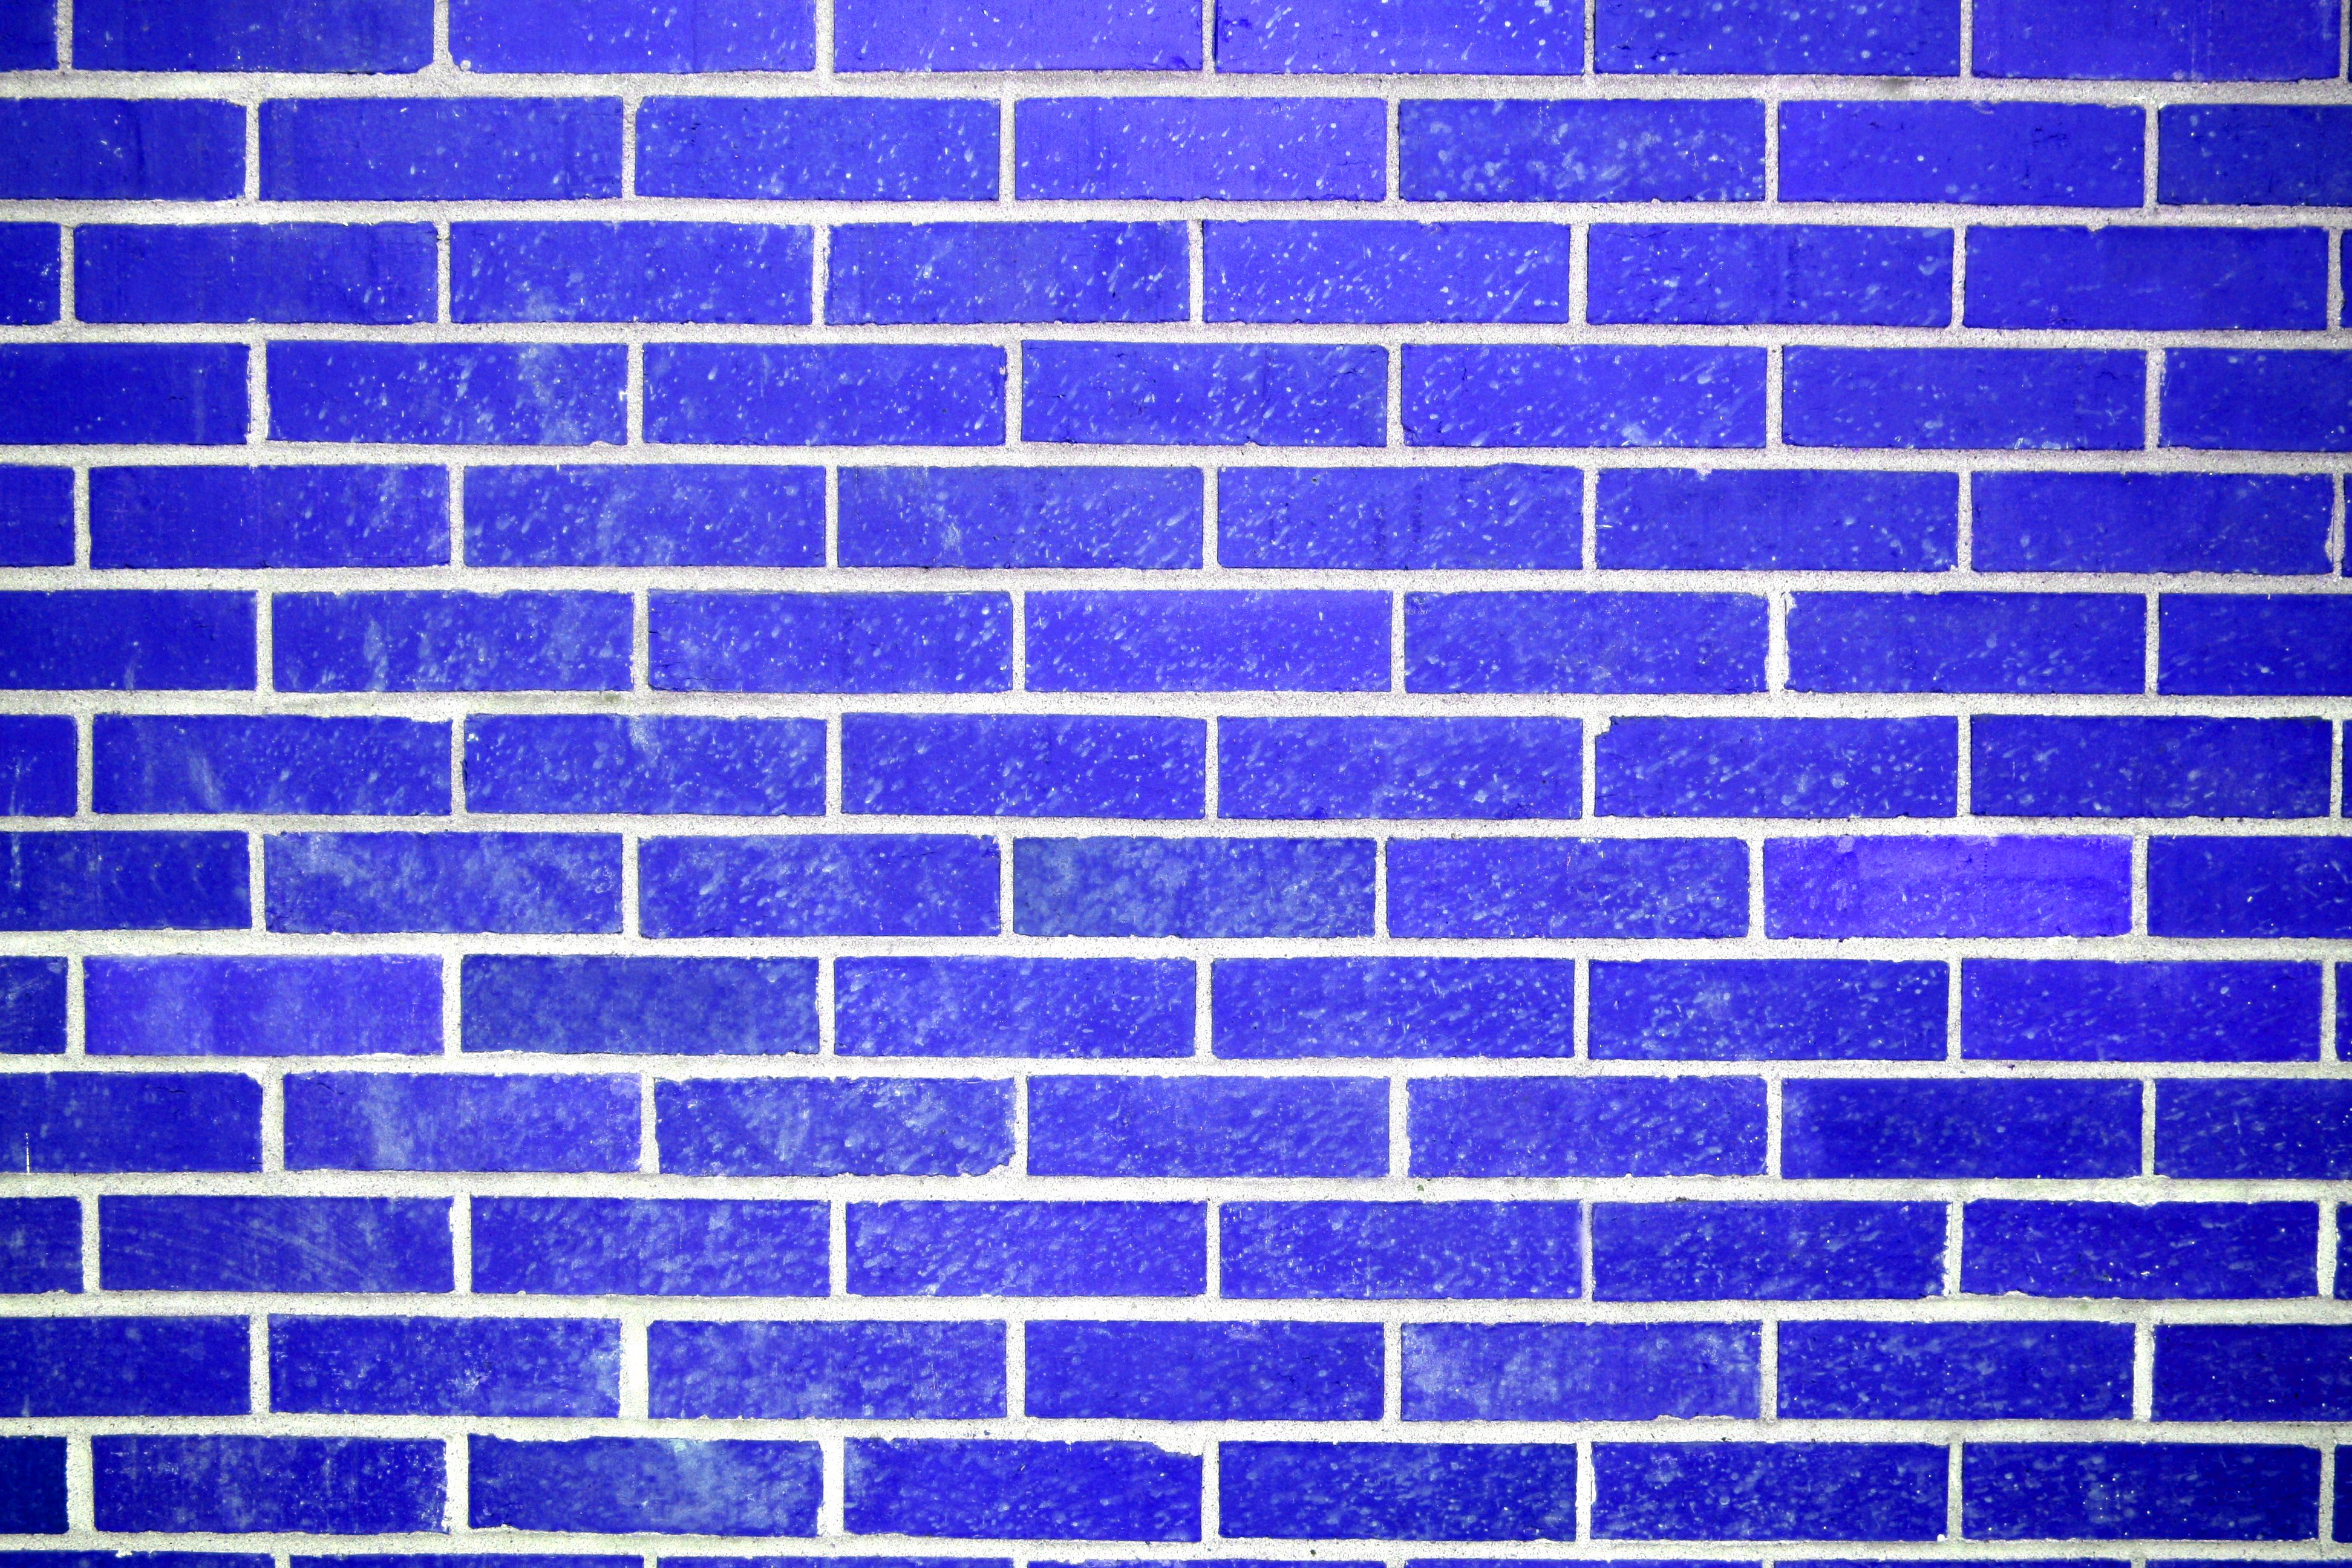 Blue Brick Wall Texture